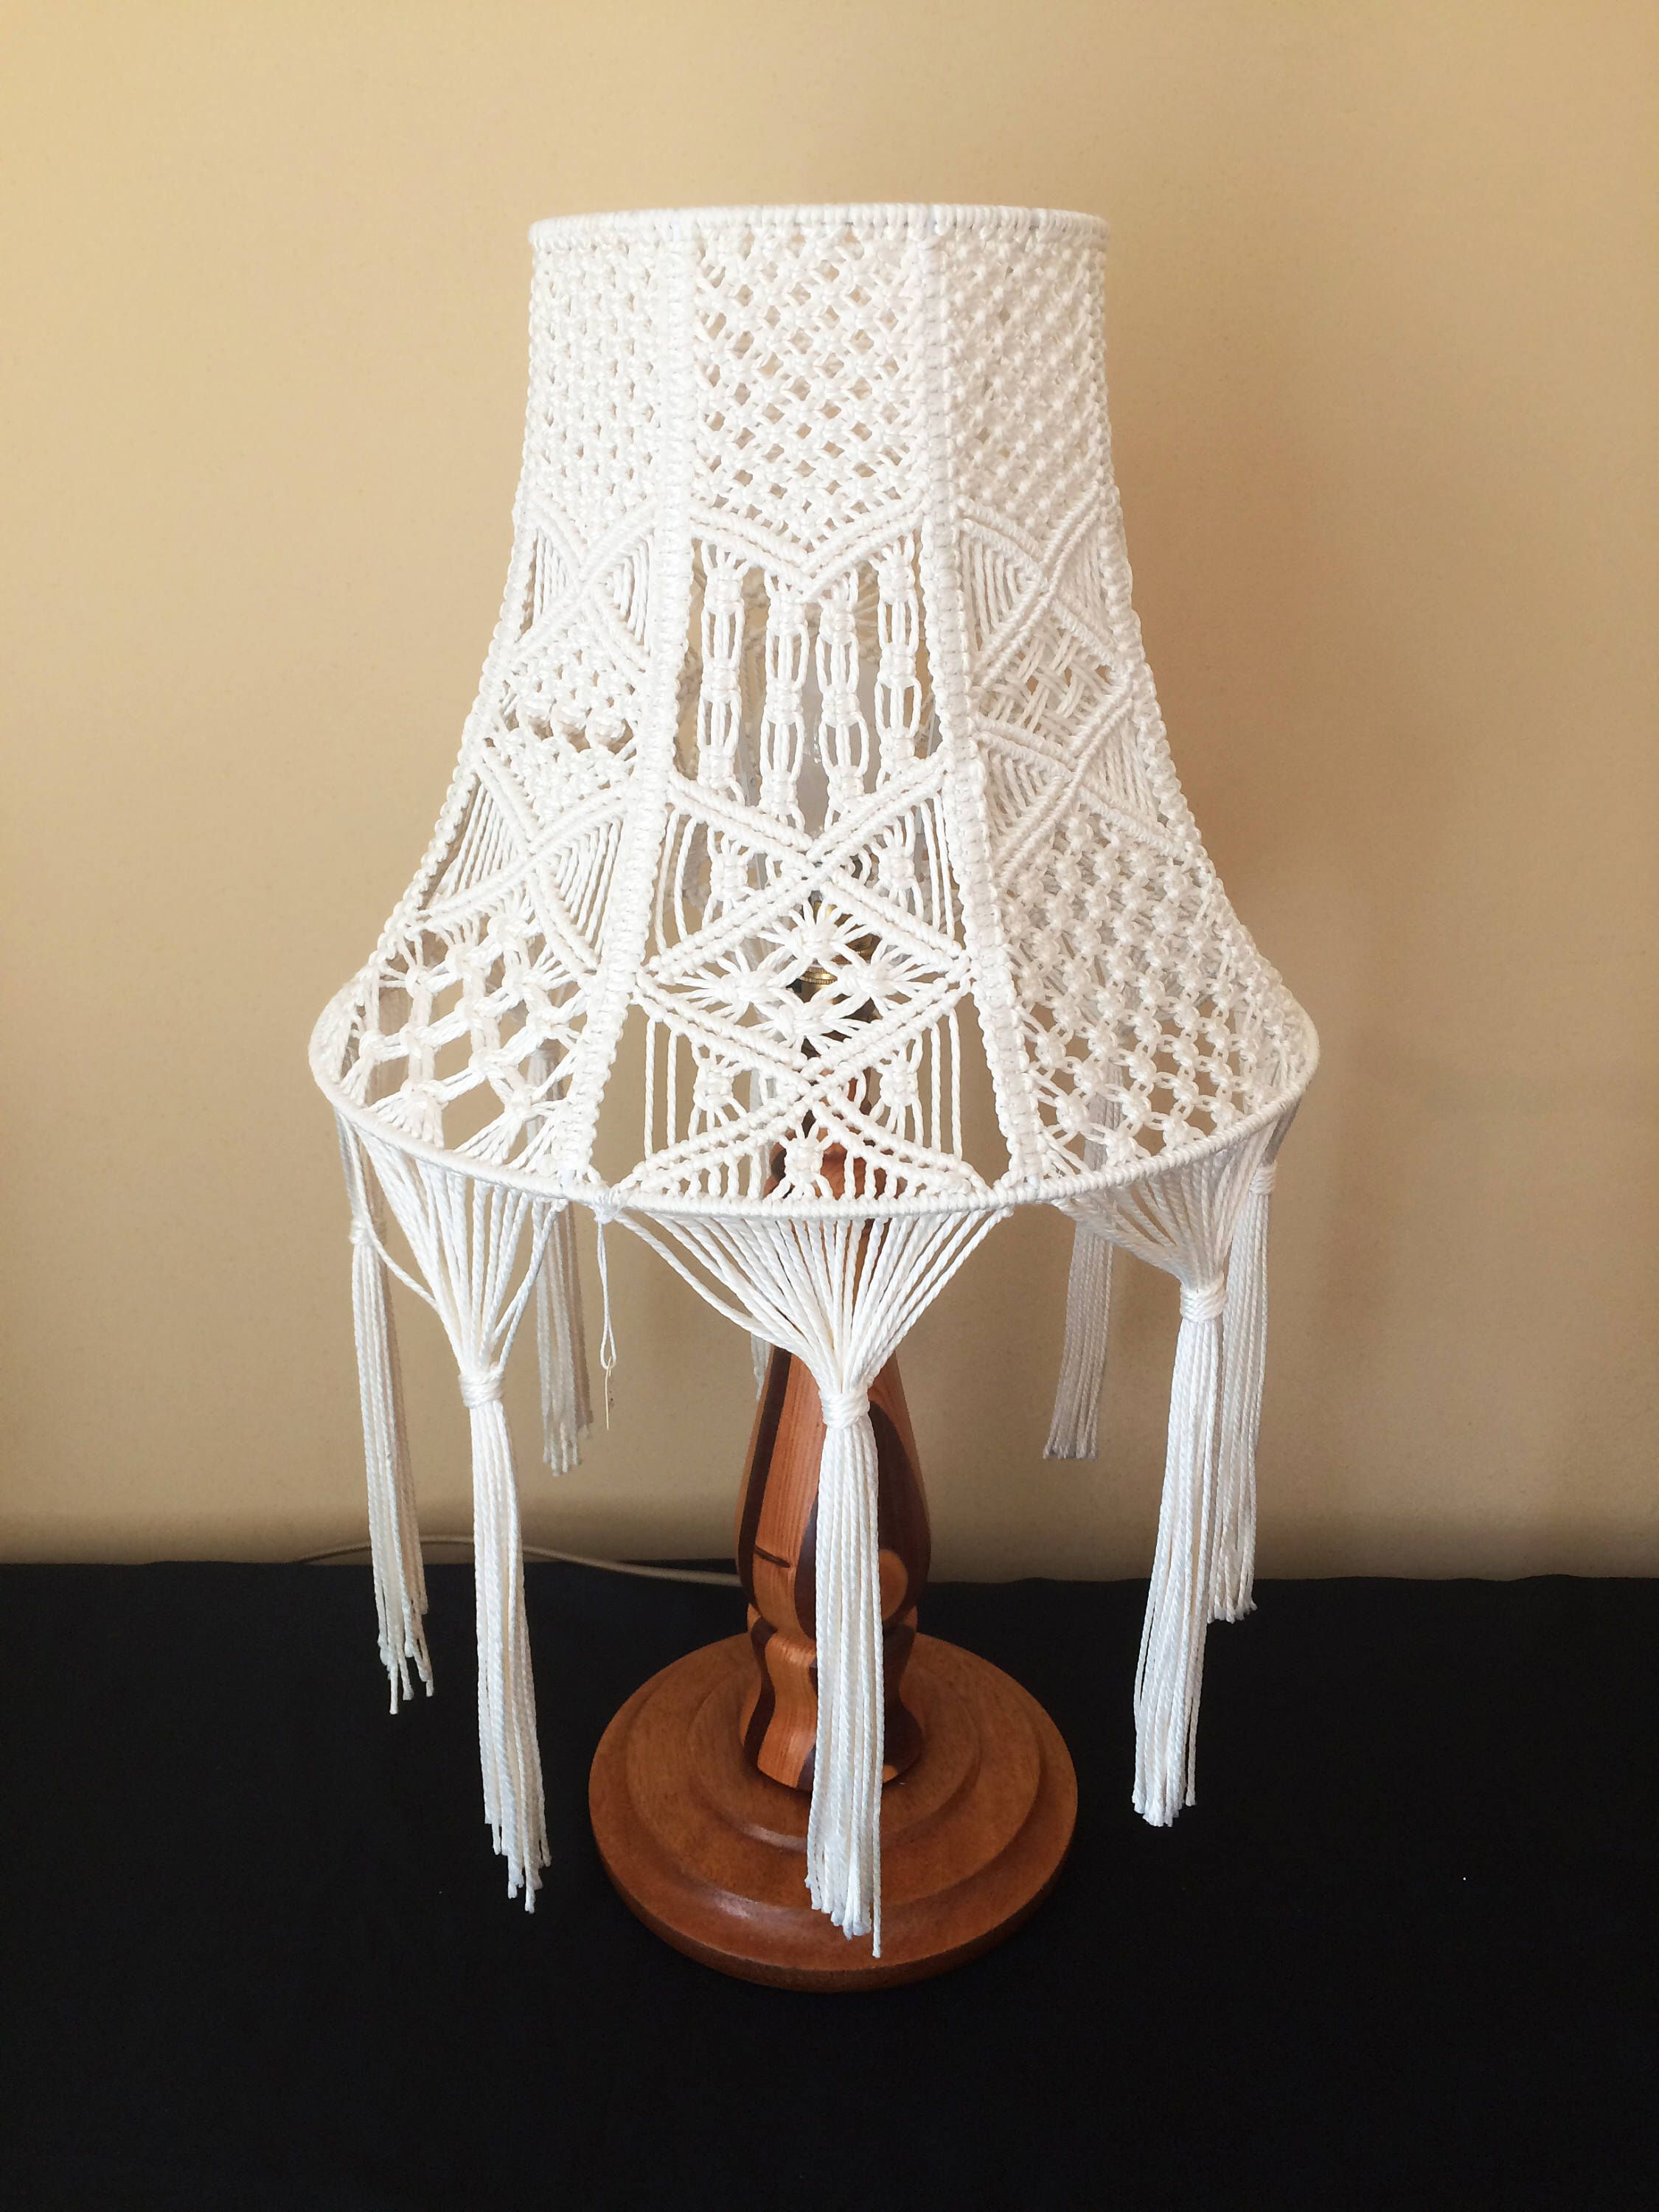 14 inch macrame lamp shade pinterest etsy patterns and craft 14 inch macrame lamp shade by creesloughmacrame on etsy httpsetsy listing52164647414 inch macrame lamp shade aloadofball